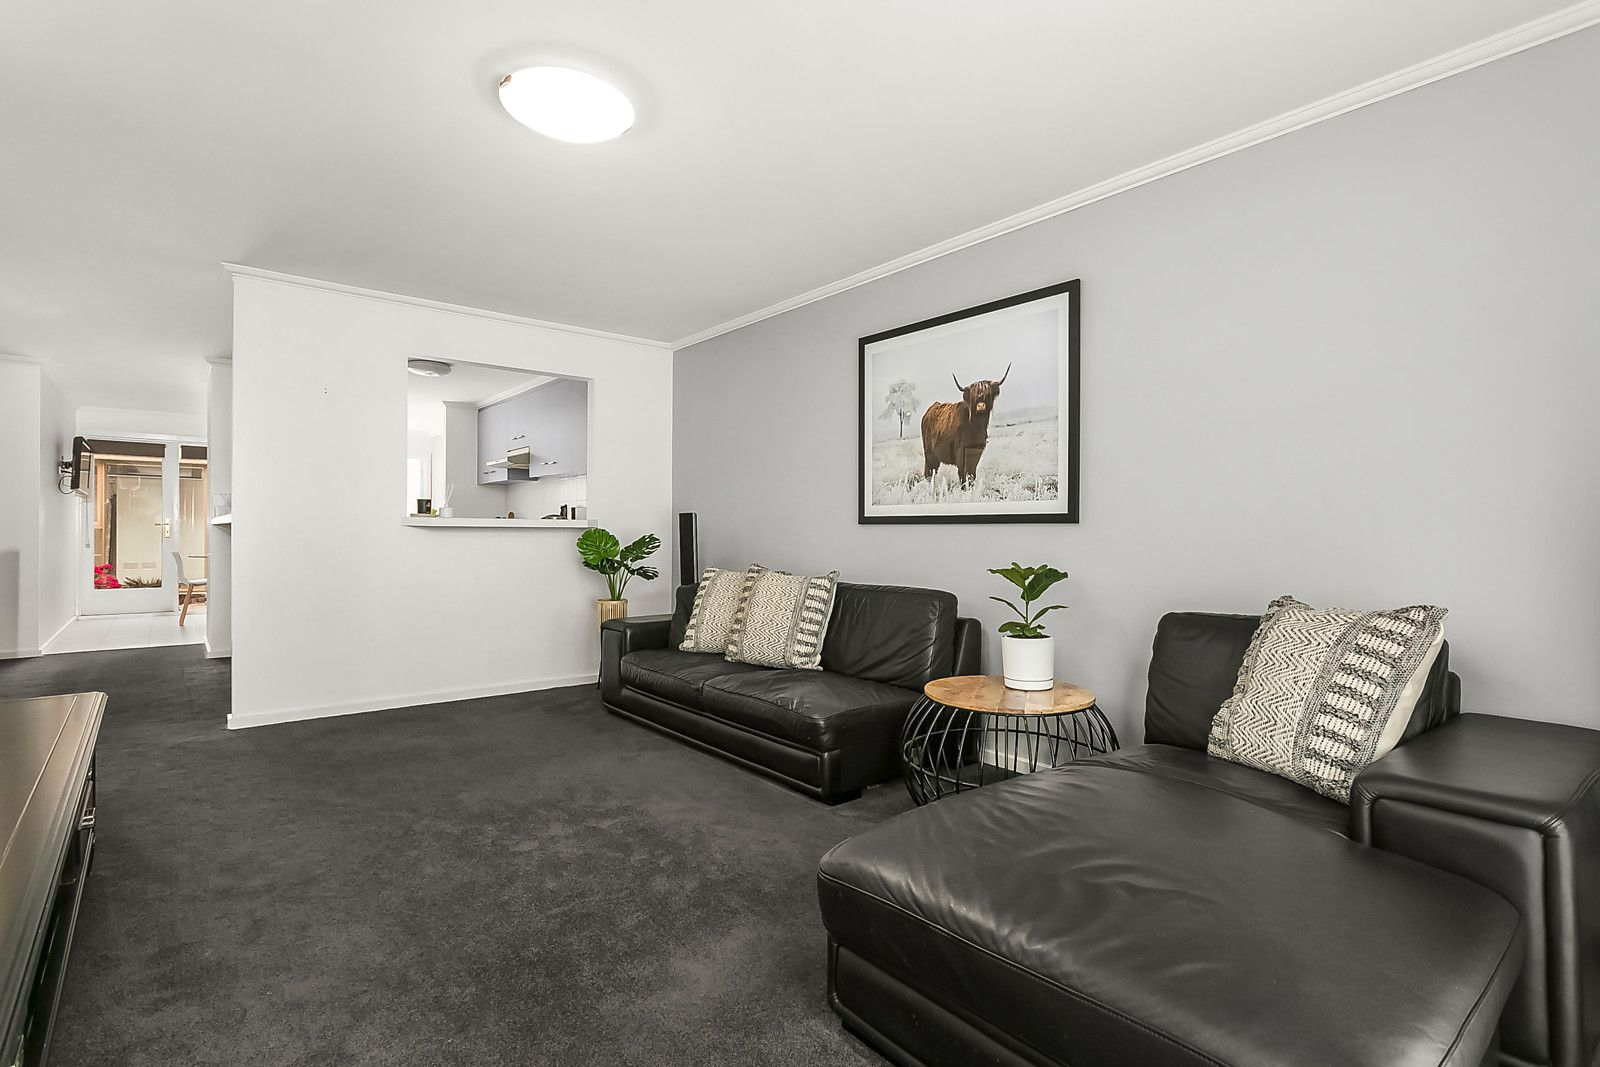 10/57 Ascot Street, Ascot Vale VIC 3032, Image 1